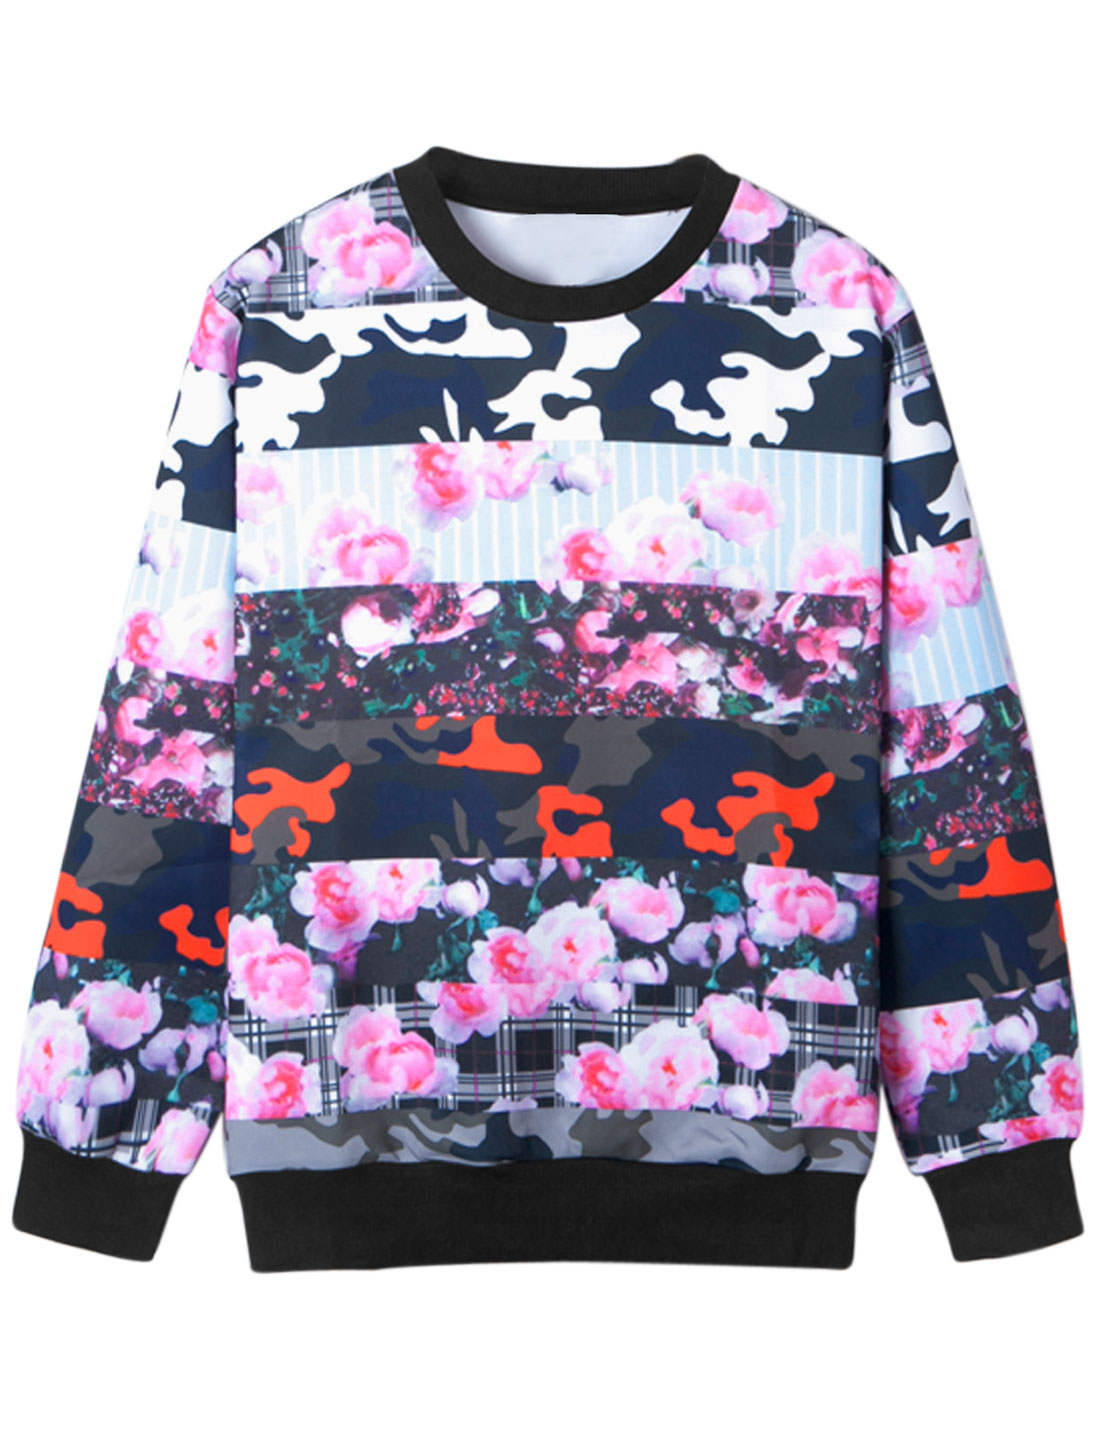 Men Round Neck Floral Camouflage Prints Sweatshirt Multicolor M